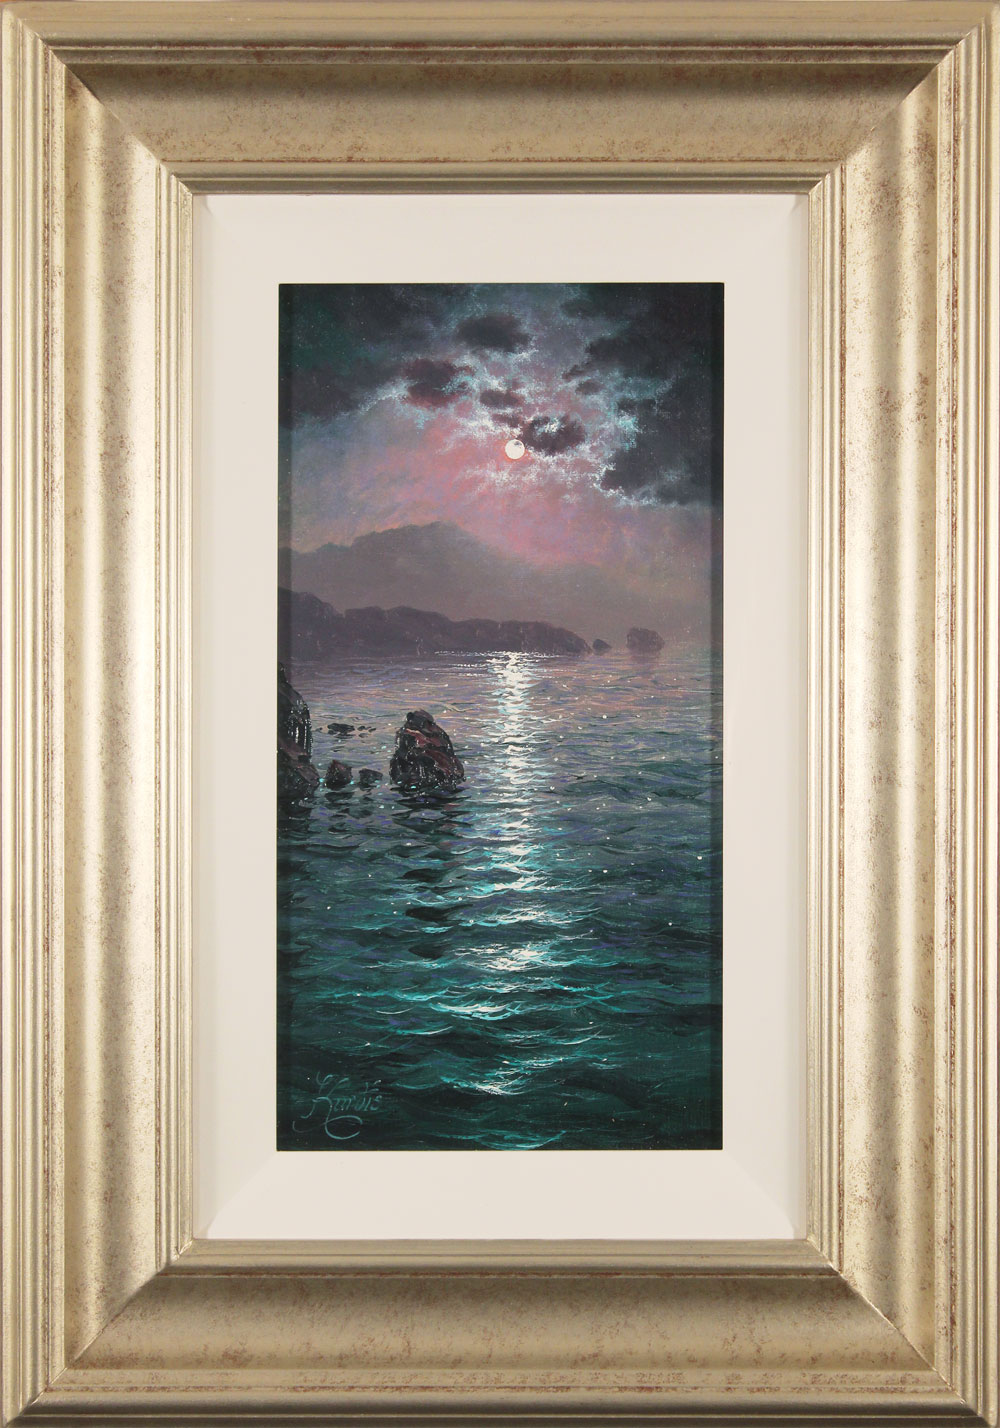 Andrew Grant Kurtis, Original oil painting on canvas, Moonlight Sparkle, Lakeland Click to enlarge